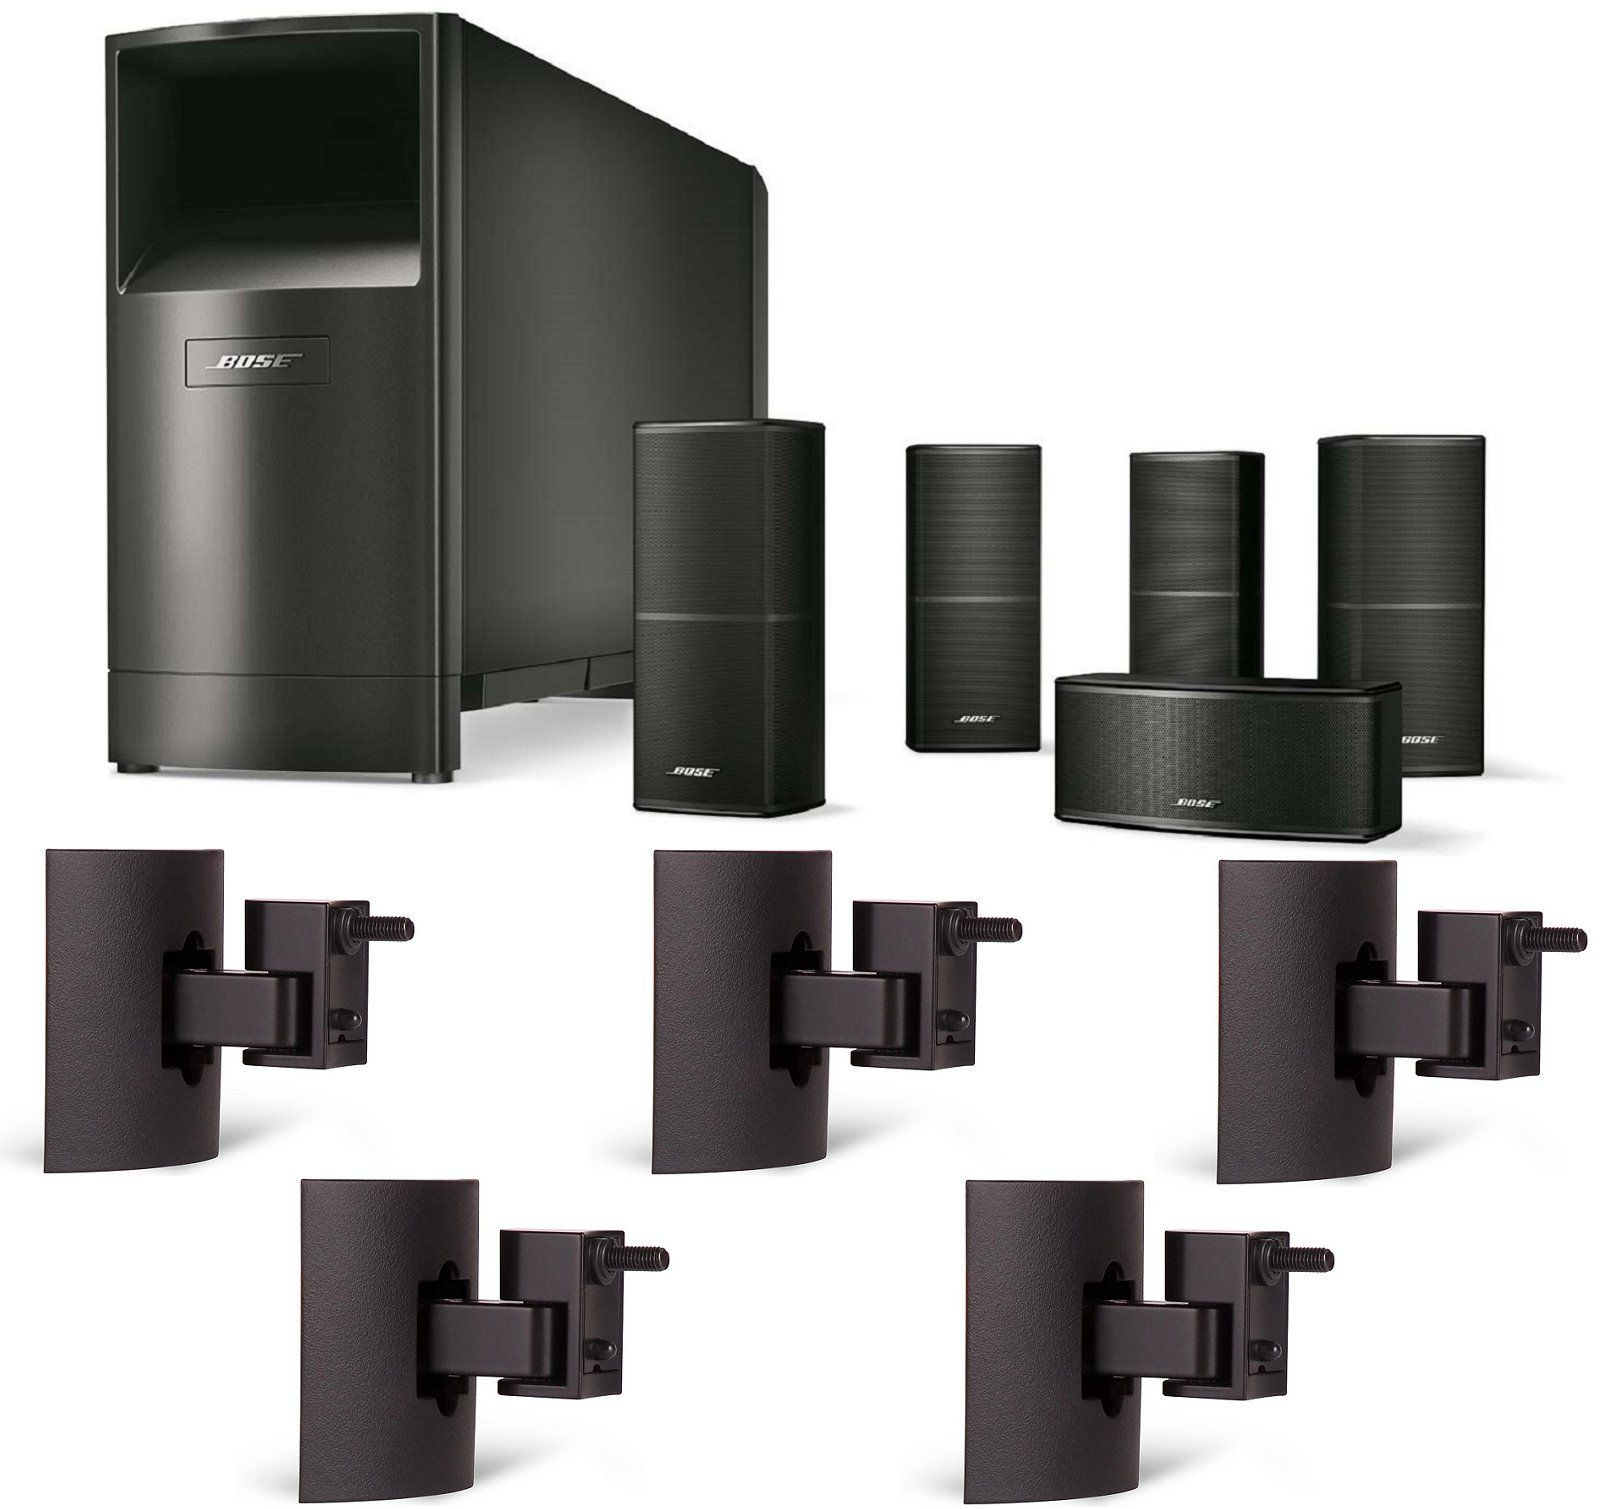 Bose Home Cinema Bose Acoustimass 10 Series V Home Theater Speaker System, Black Bundle With (5) Ub-… | Home Theater Speaker System, Home Theater Sound System, Home Theater Speakers